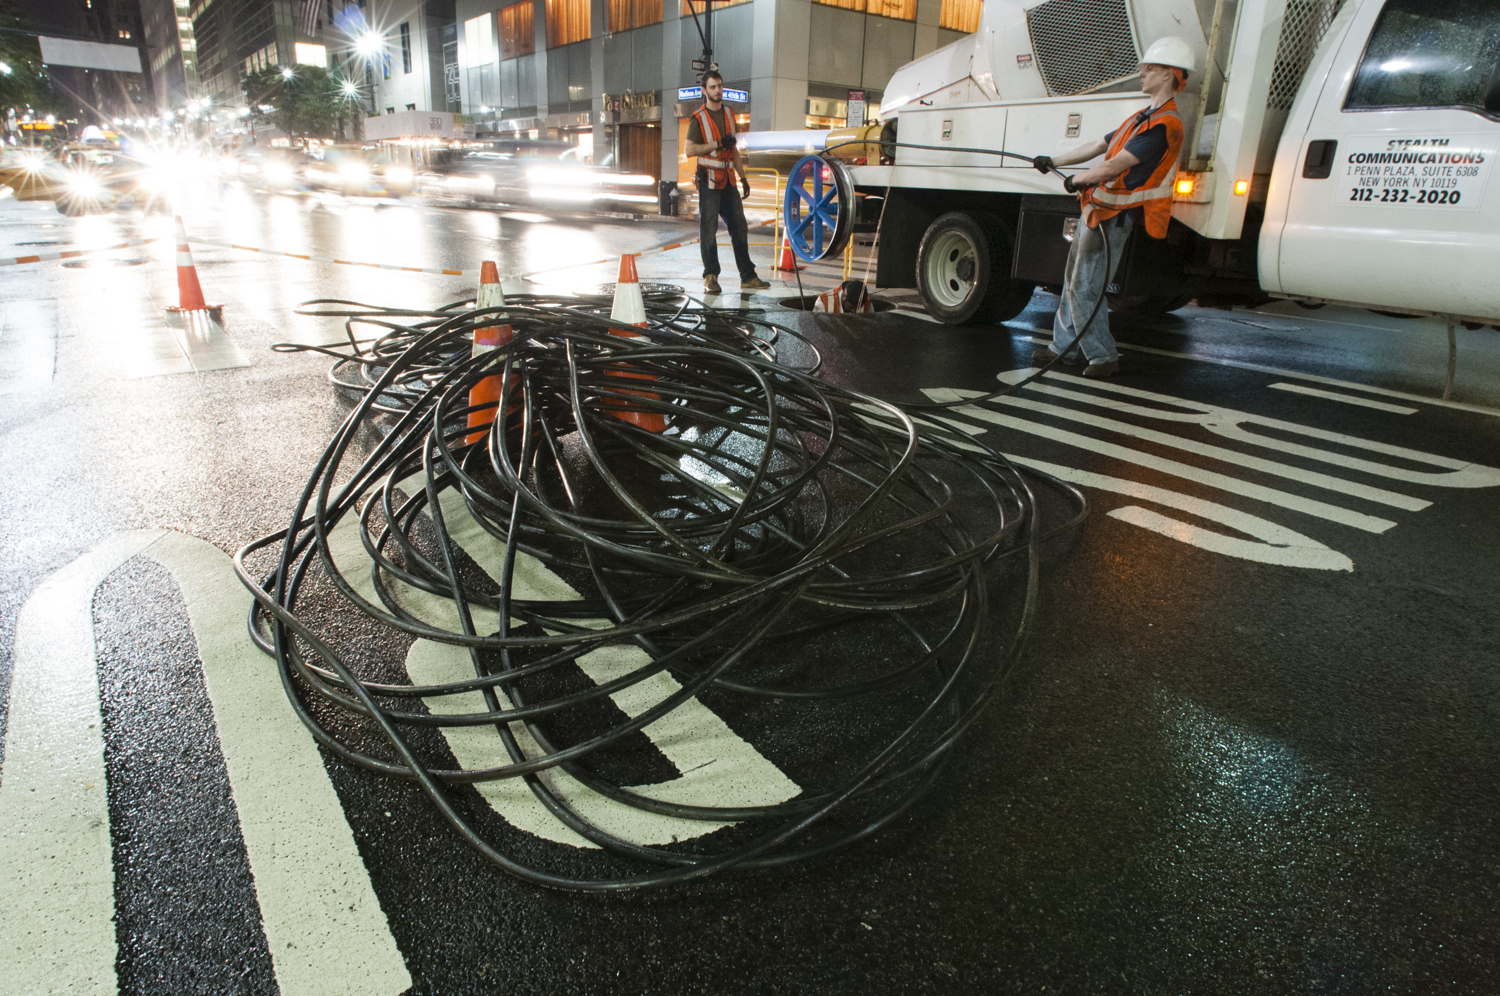 """Stealth Fiber Crew installing fiber cable underneath the streets of Manhattan"" by Shuli Hallak - Own work. Licensed under CC BY-SA 3.0 via Wikimedia Commons - http://commons.wikimedia.org/wiki/File:Stealth_Fiber_Crew_installing_fiber_cable_underneath_the_streets_of_Manhattan.jpg#/media/File:Stealth_Fiber_Crew_installing_fiber_cable_underneath_the_streets_of_Manhattan.jpg"